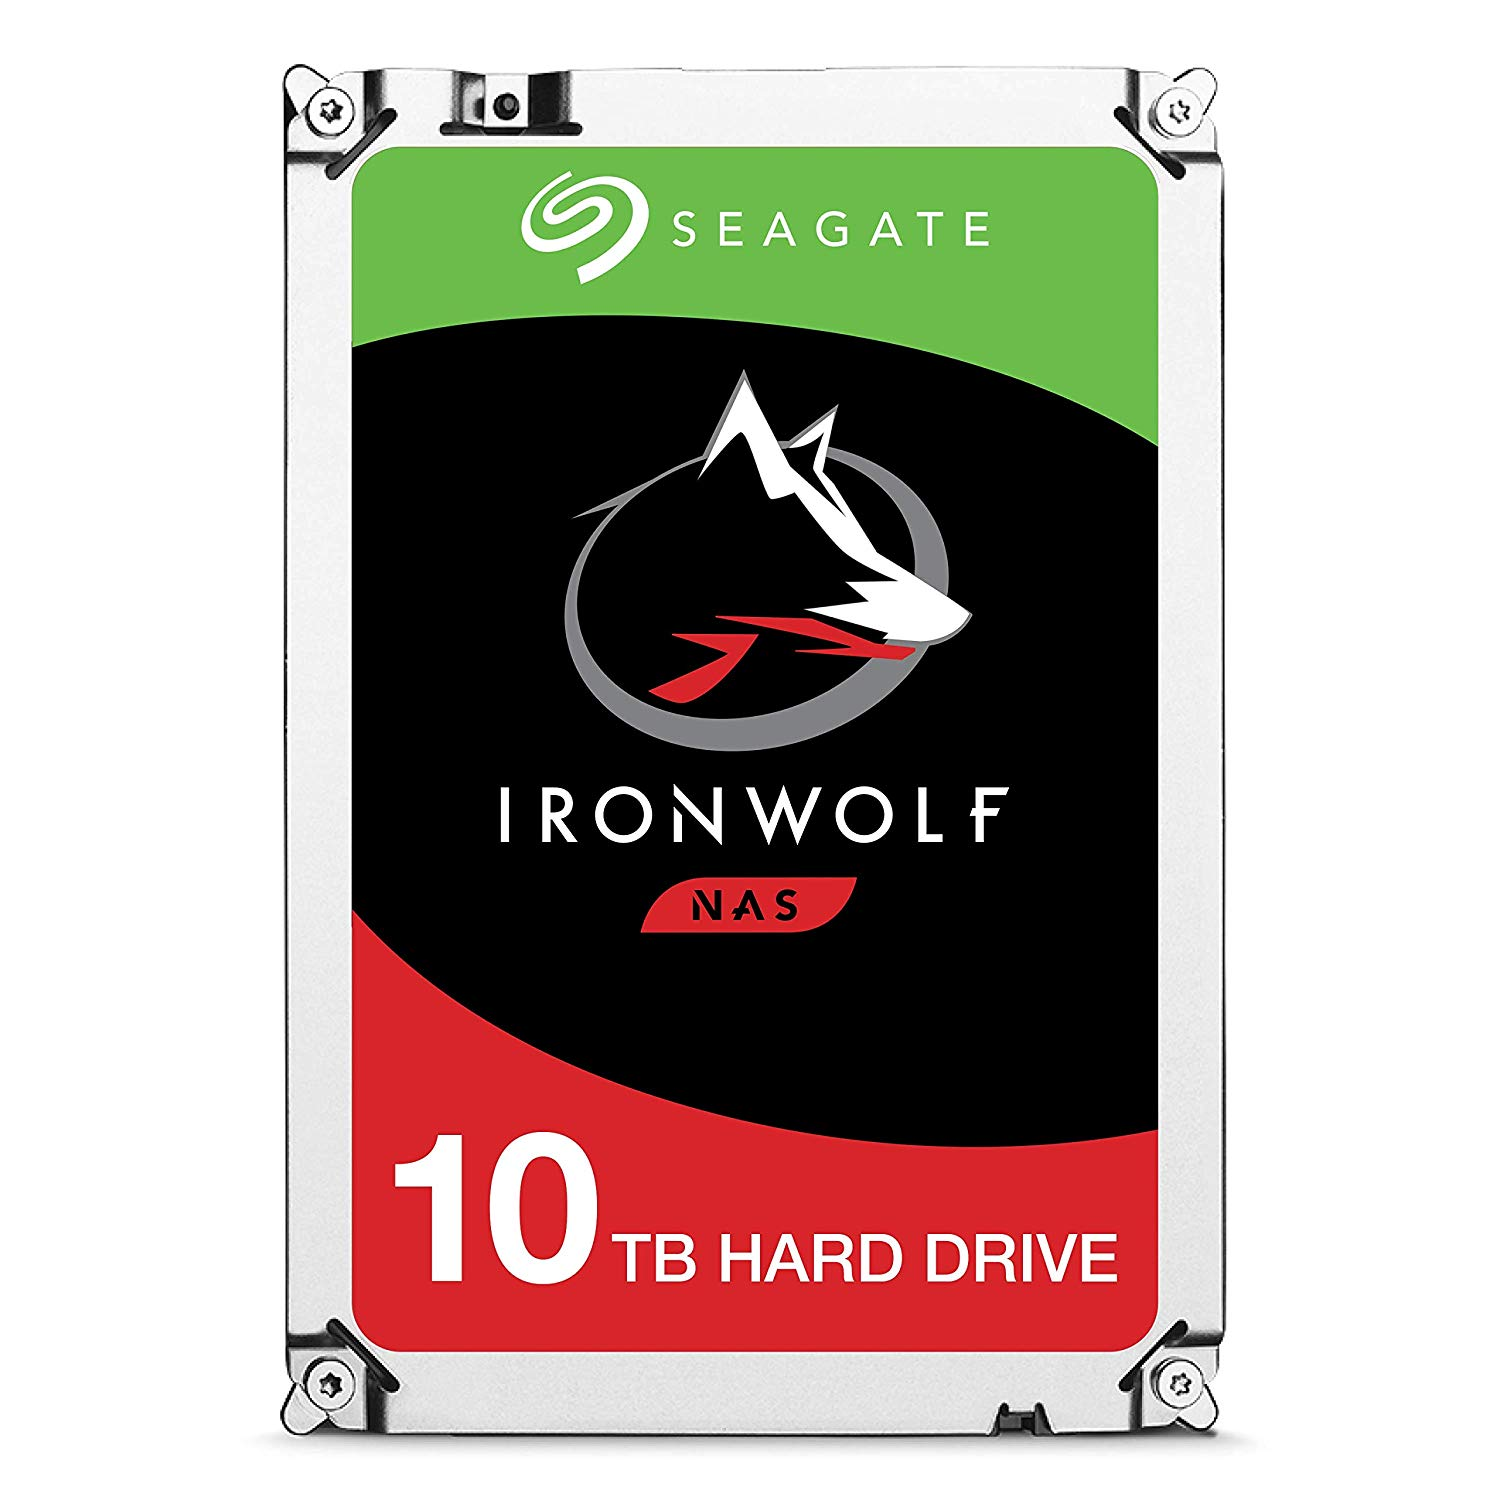 Seagate 10TB IronWolf NAS SATA 6Gb/s NCQ 256MB Cache 3.5-Inch Internal Hard Drive